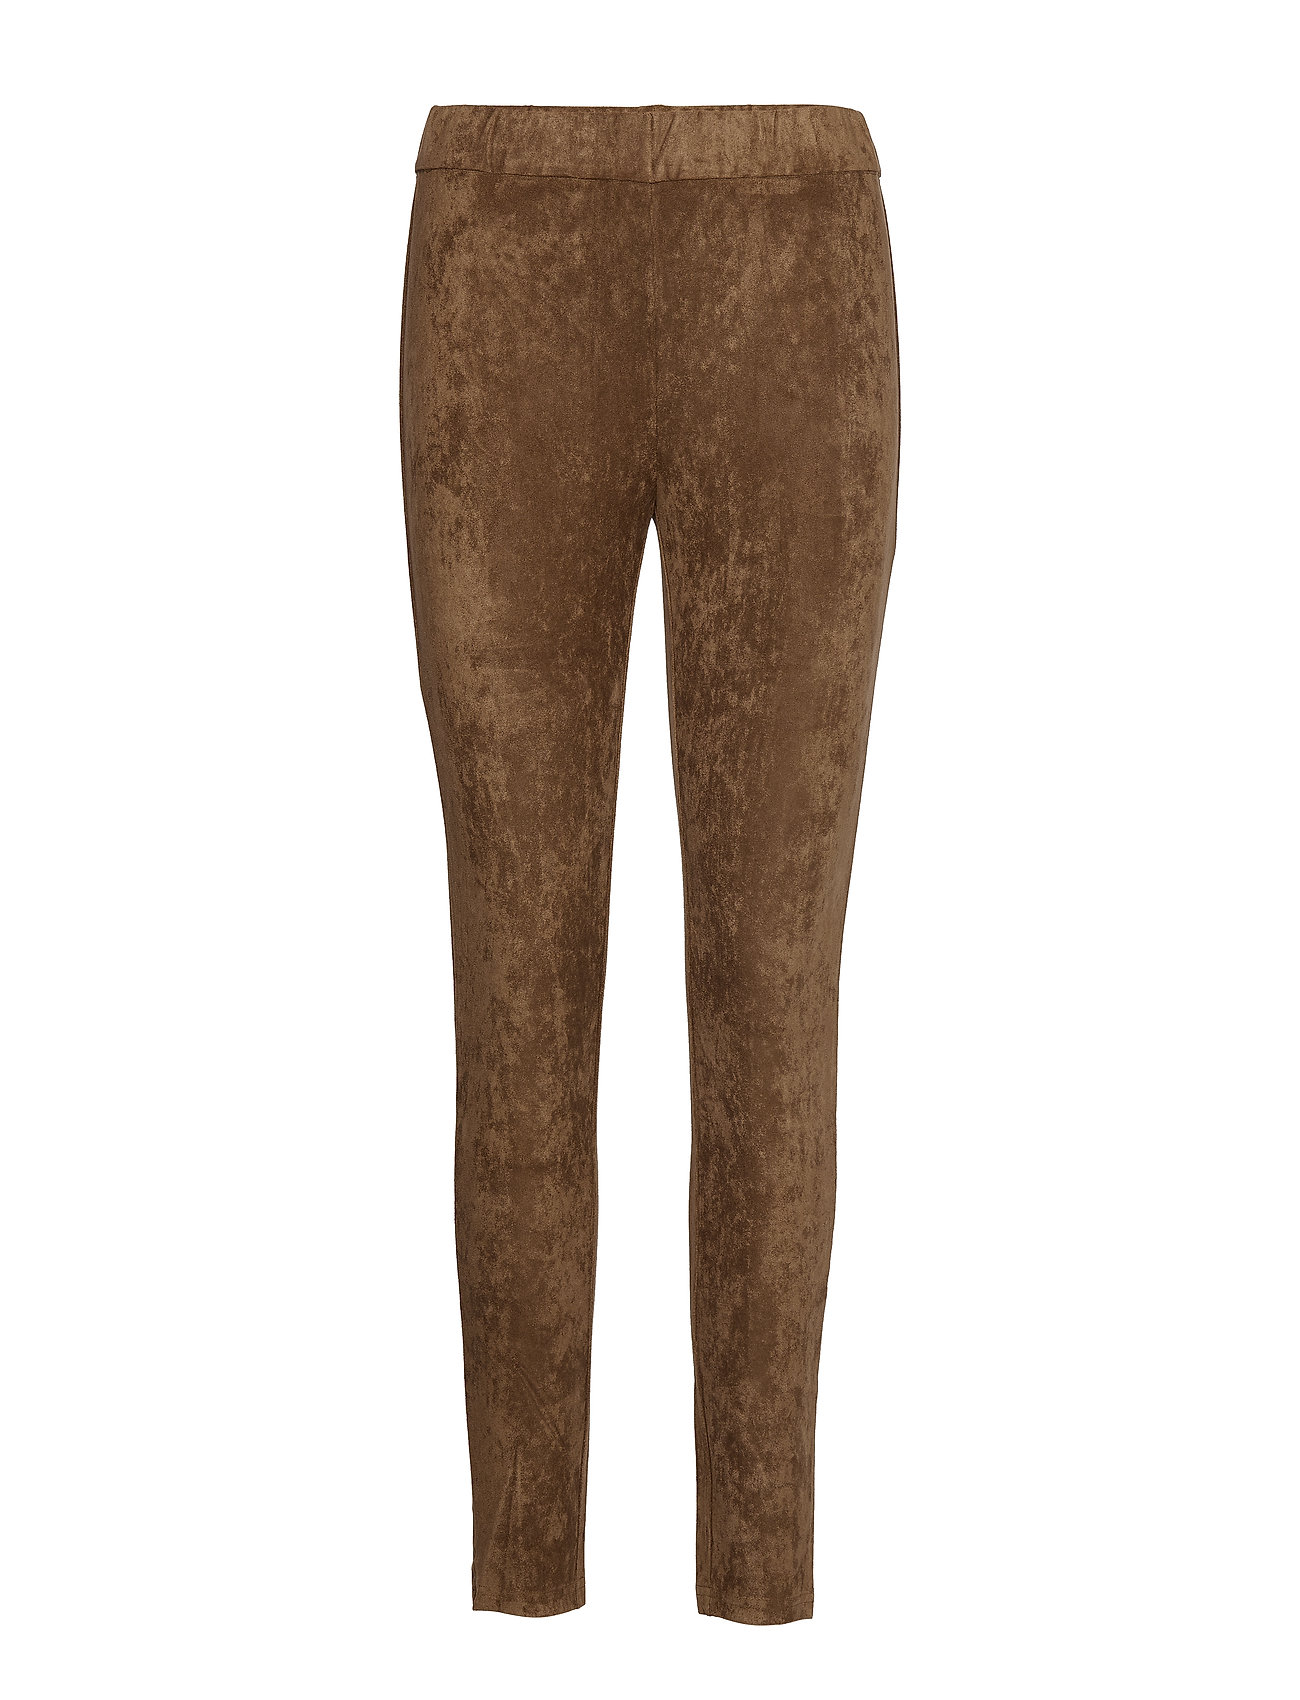 Sofie Schnoor Pants - BROWN